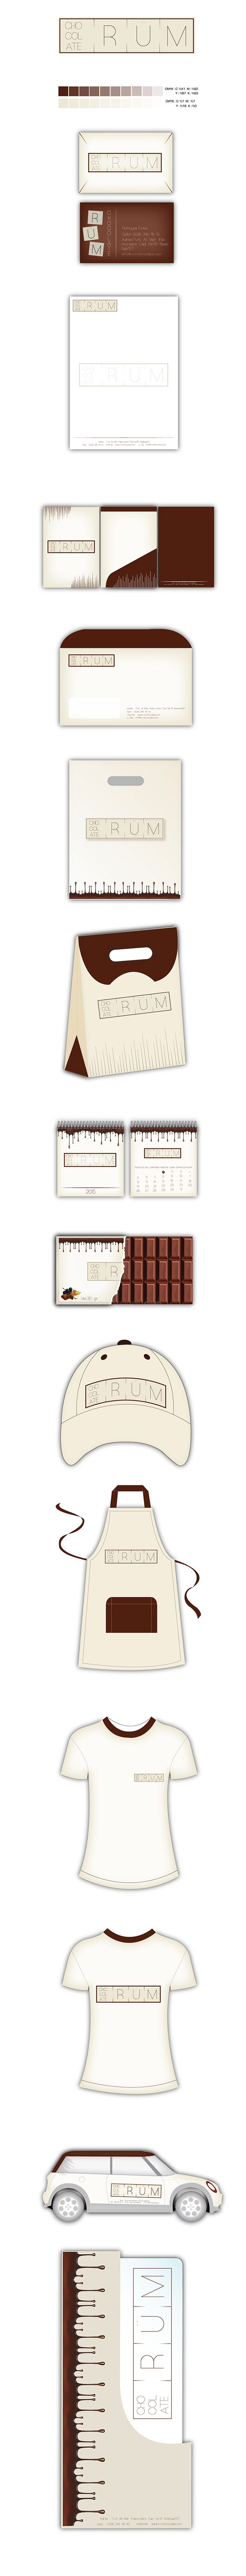 Rüm Chocolate on Behance